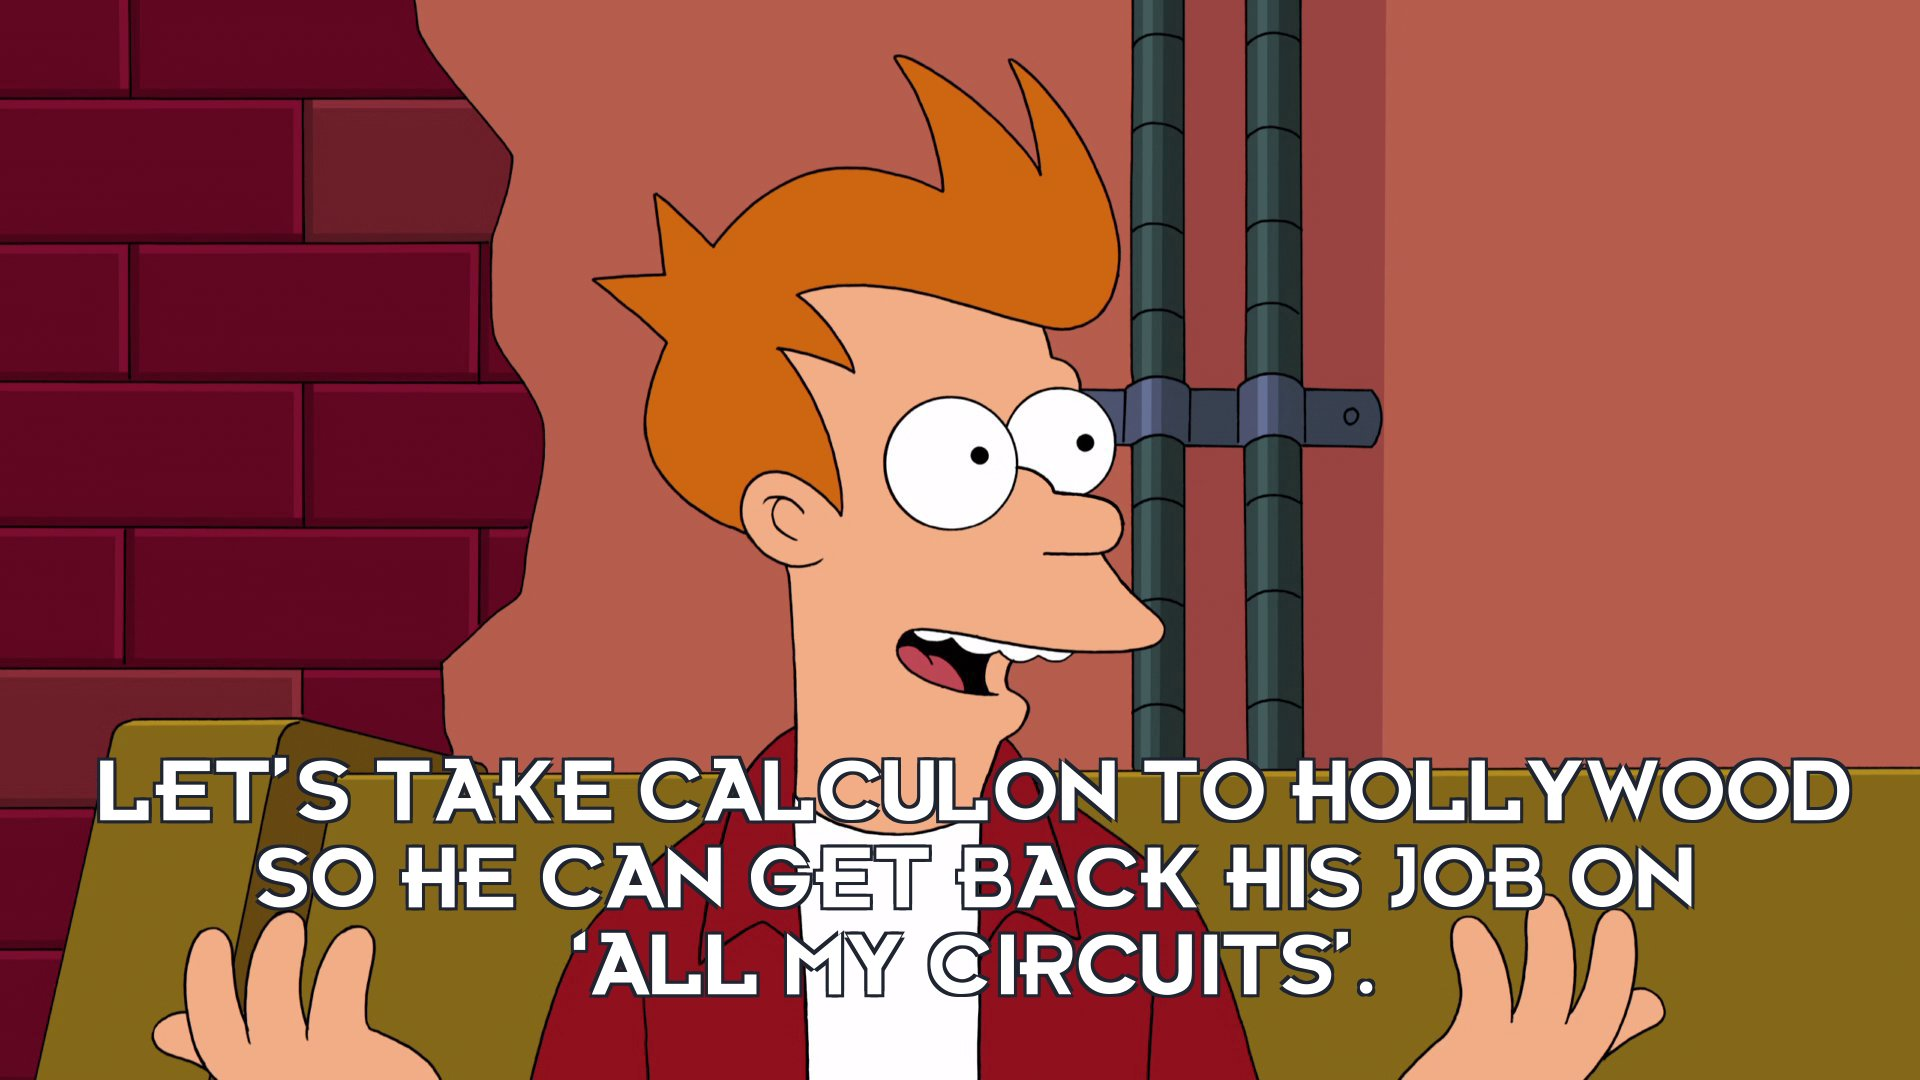 Philip J Fry: Let's take Calculon to Hollywood so he can get back his job on 'All My Circuits'.